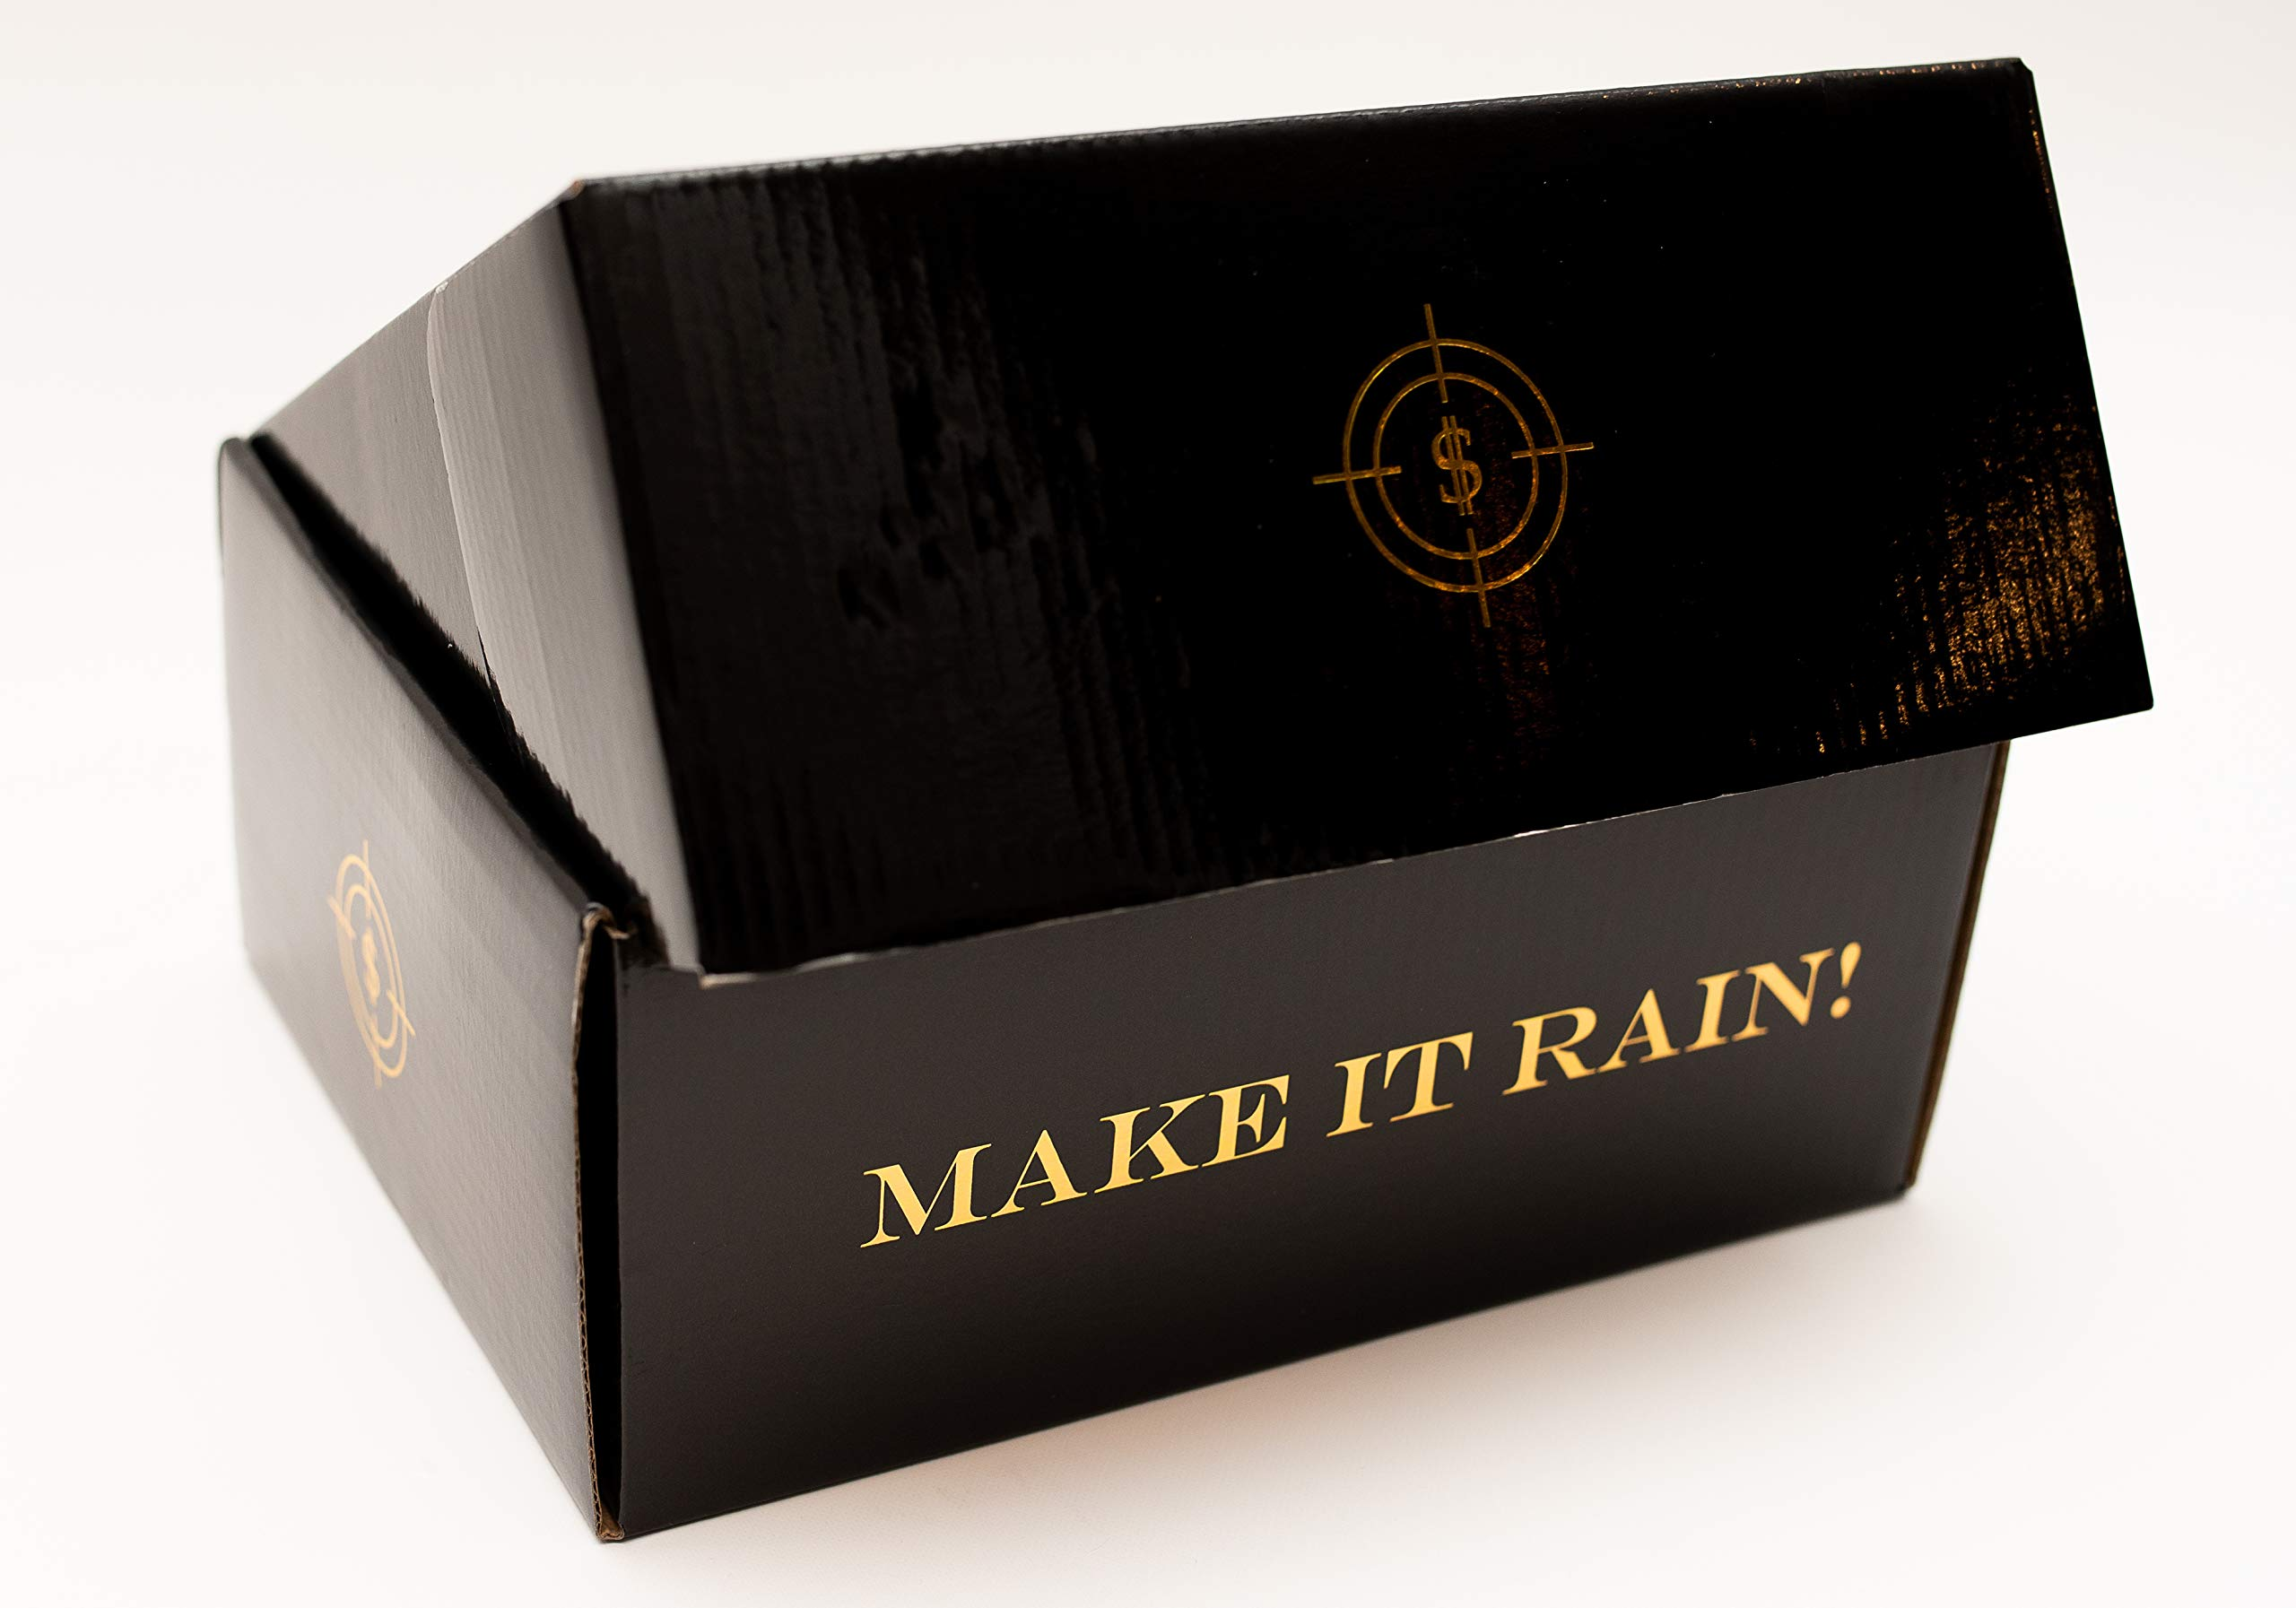 All Out Solutions The Rainmaker Money Gun | $10,000 Play Money | Money Looks Real! | Metallic Gold | Impress Your Friends with This Fun Party Toy | Shoot Cash and Make It Rain by All Out Solutions (Image #9)